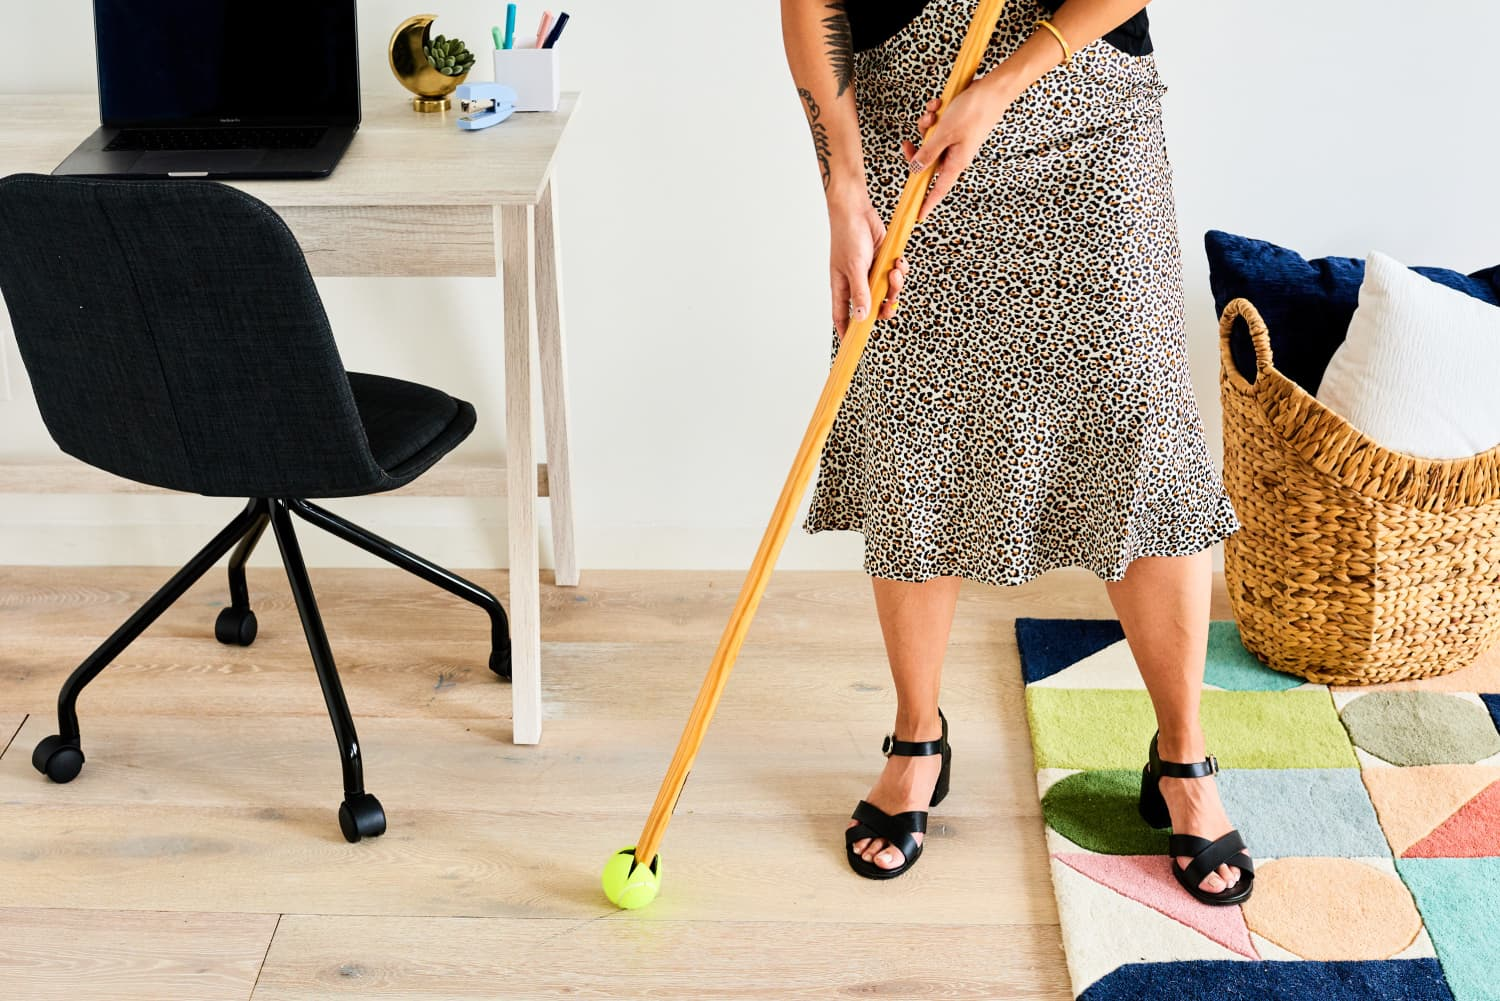 Stick a Tennis Ball on the End of Your Broom to Make a Super-Powered Cleaning Tool